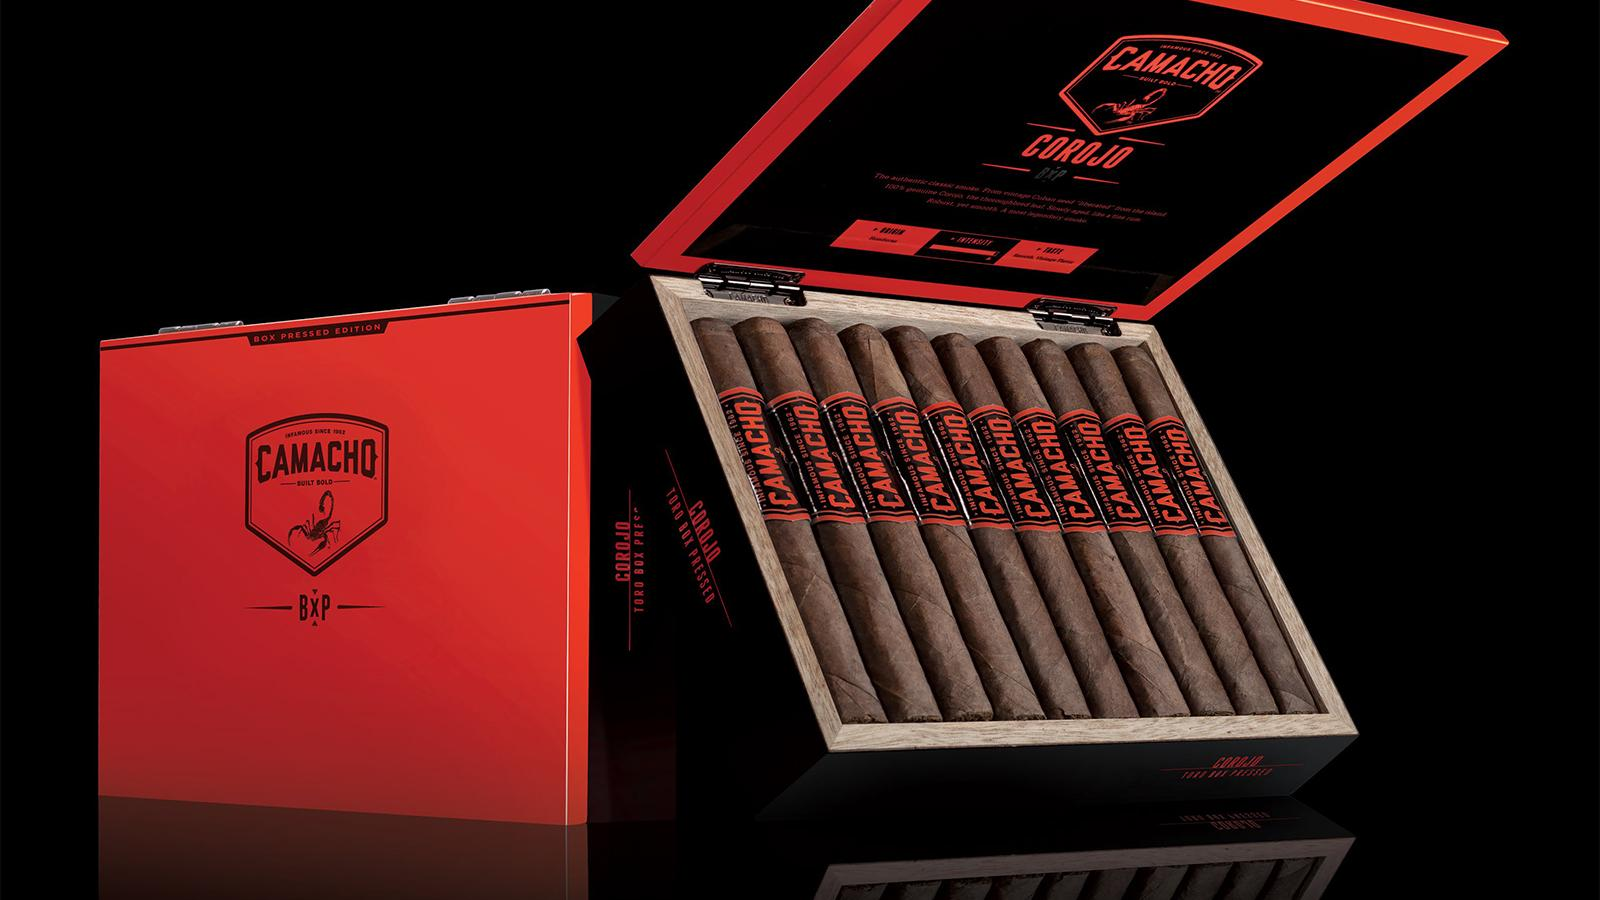 Camacho Cigars Get Box Pressed